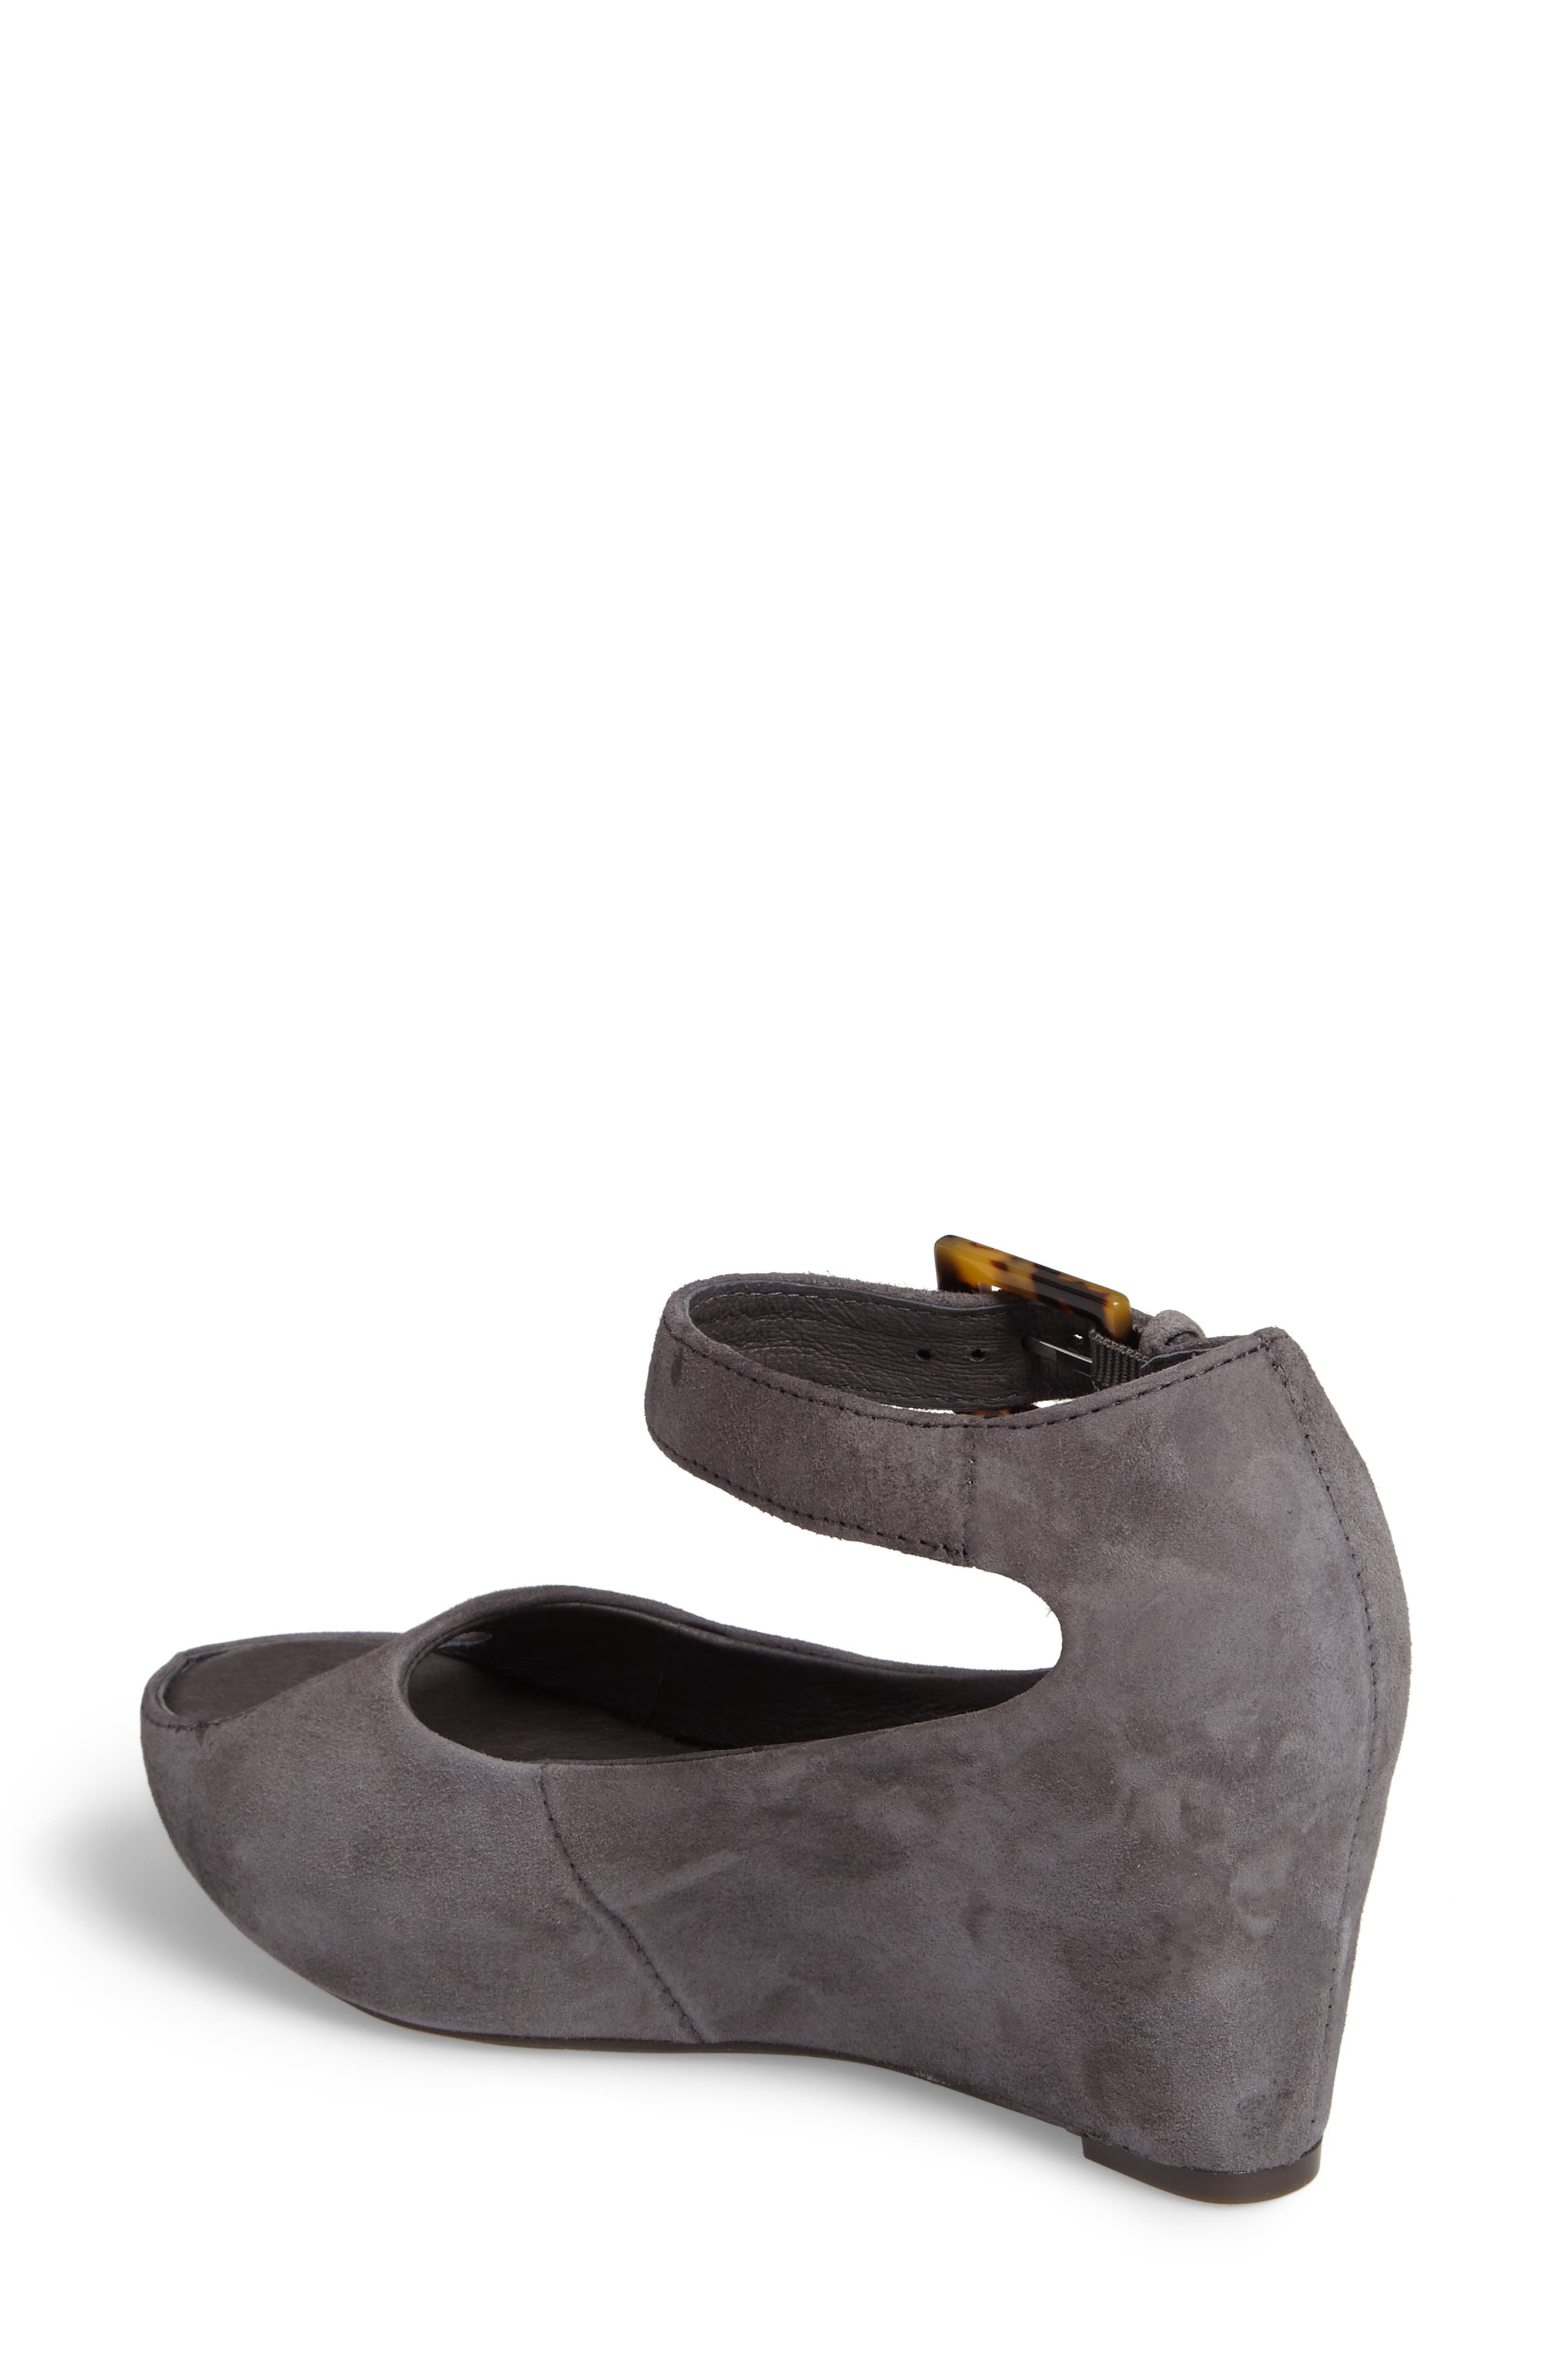 'Tricia' Ankle Strap Sandal,                             Alternate thumbnail 2, color,                             Gray Suede